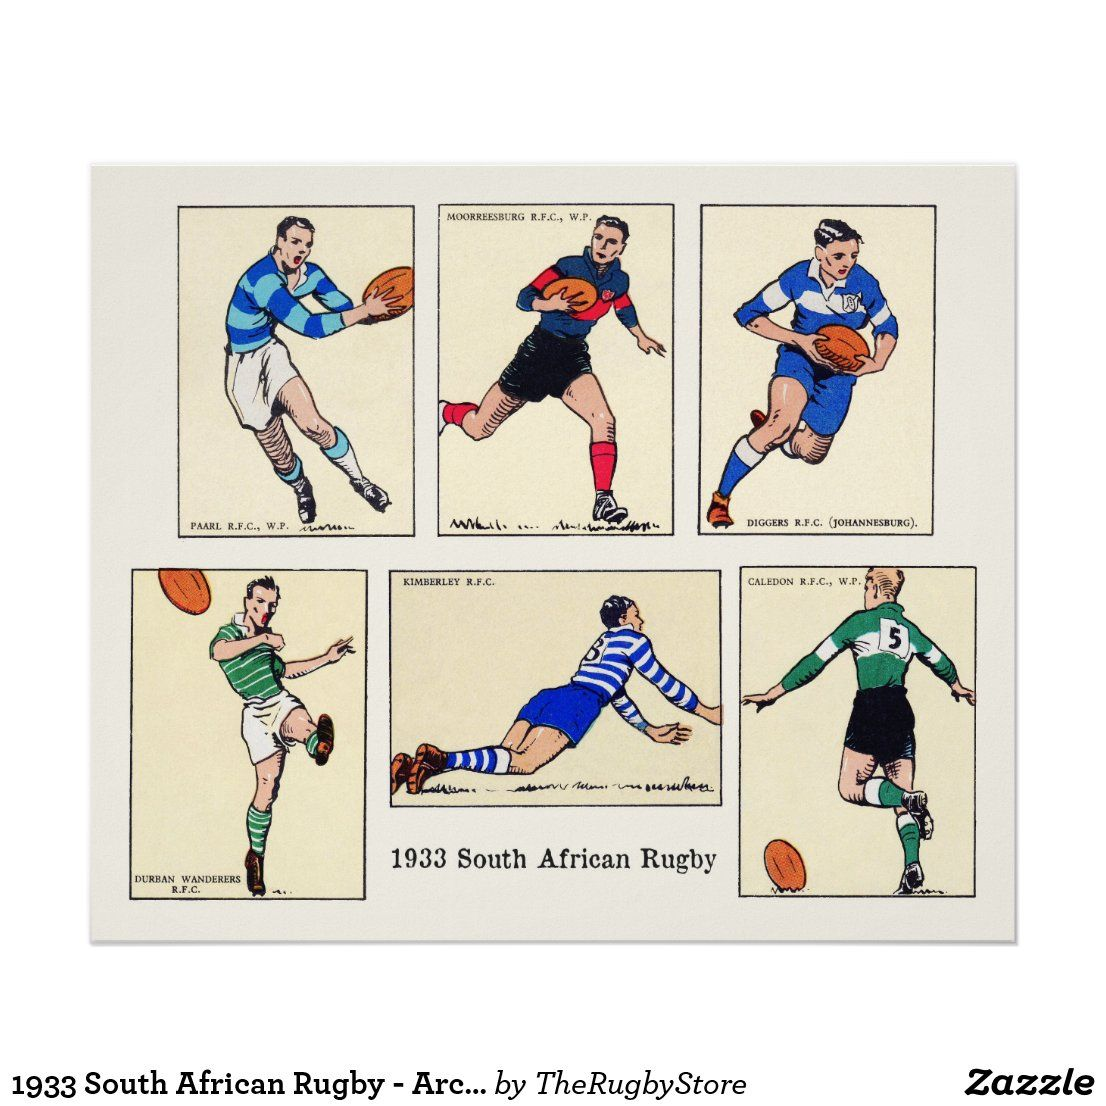 1933 South African Rugby Archival Print Zazzle Com In 2020 South African Rugby Rugby Archival Print